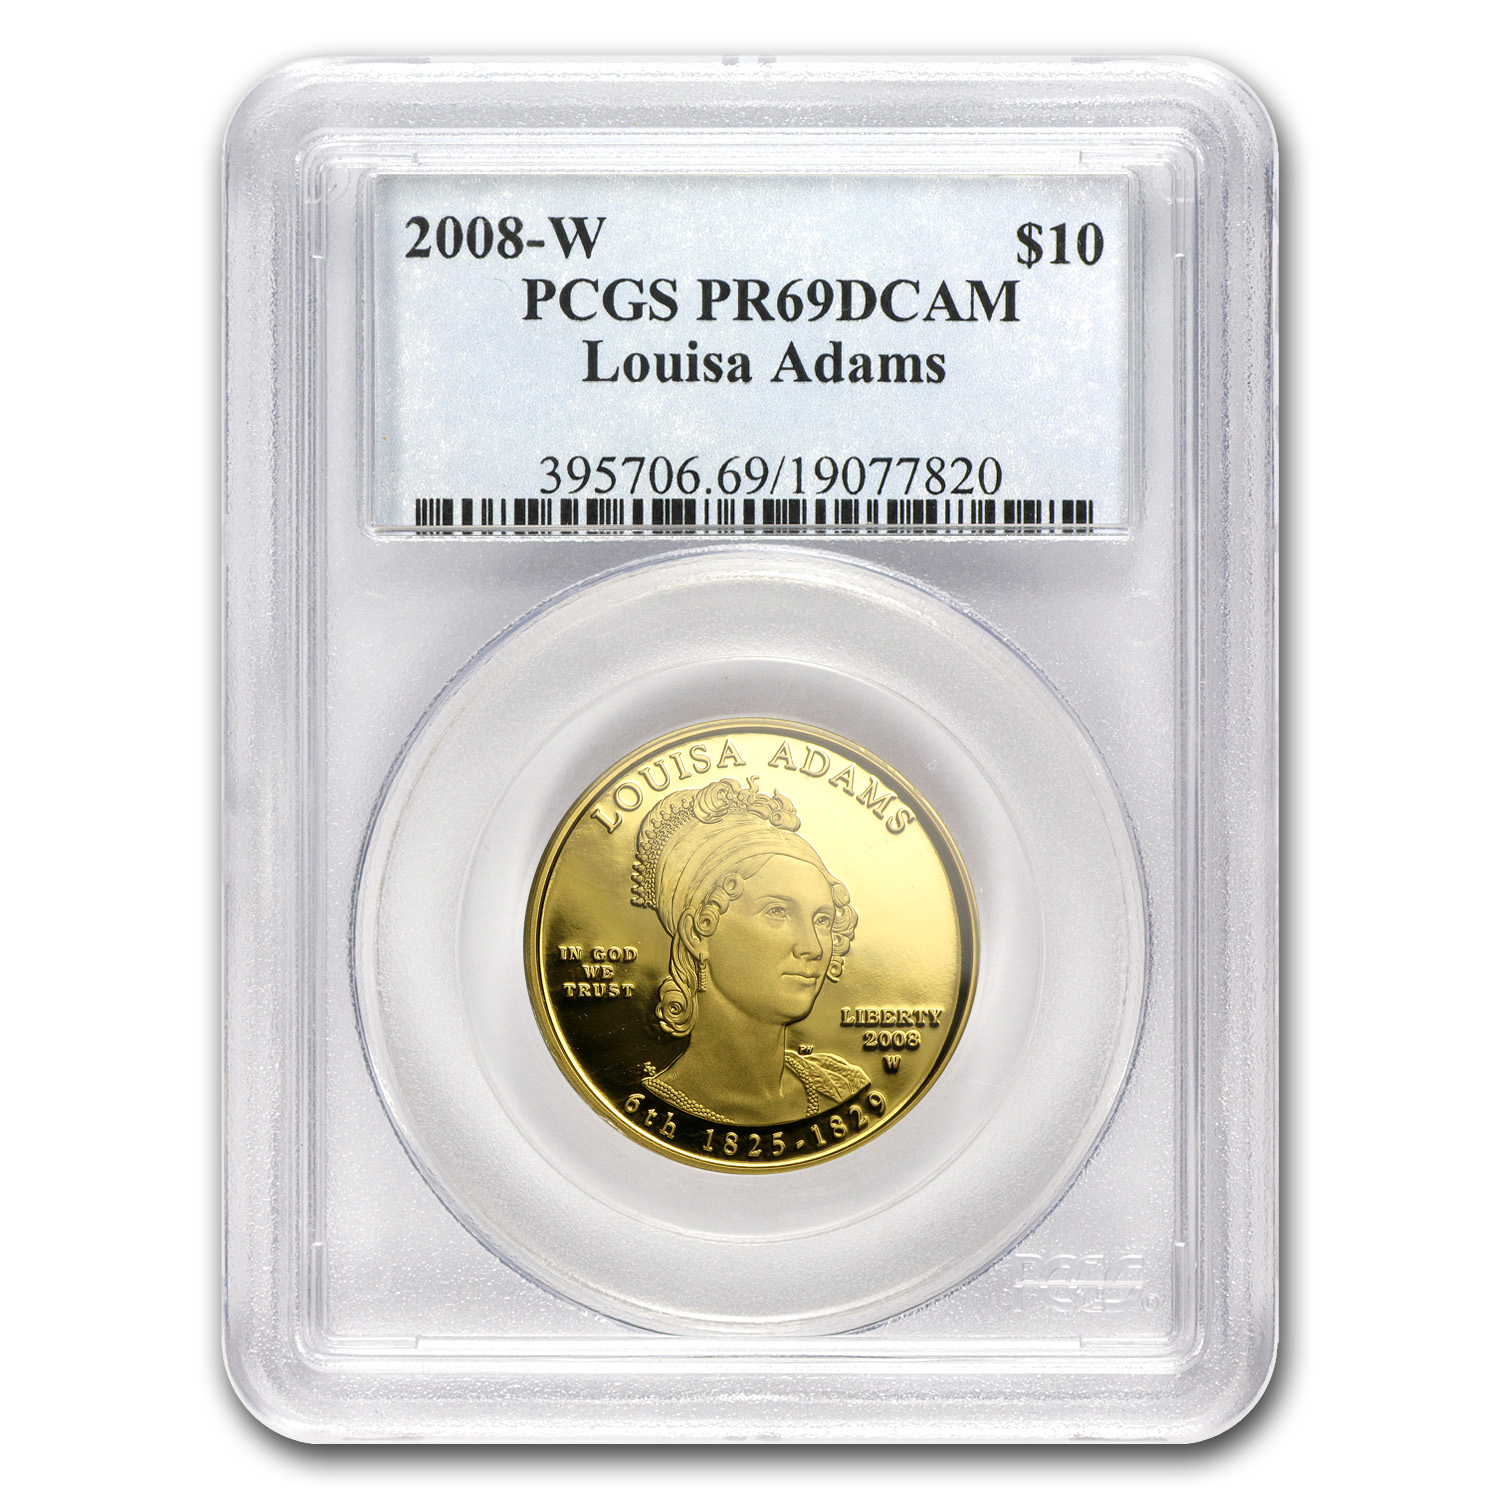 2008-W 1/2 oz Proof Gold Louisa Adams PR-69 PCGS DCAM